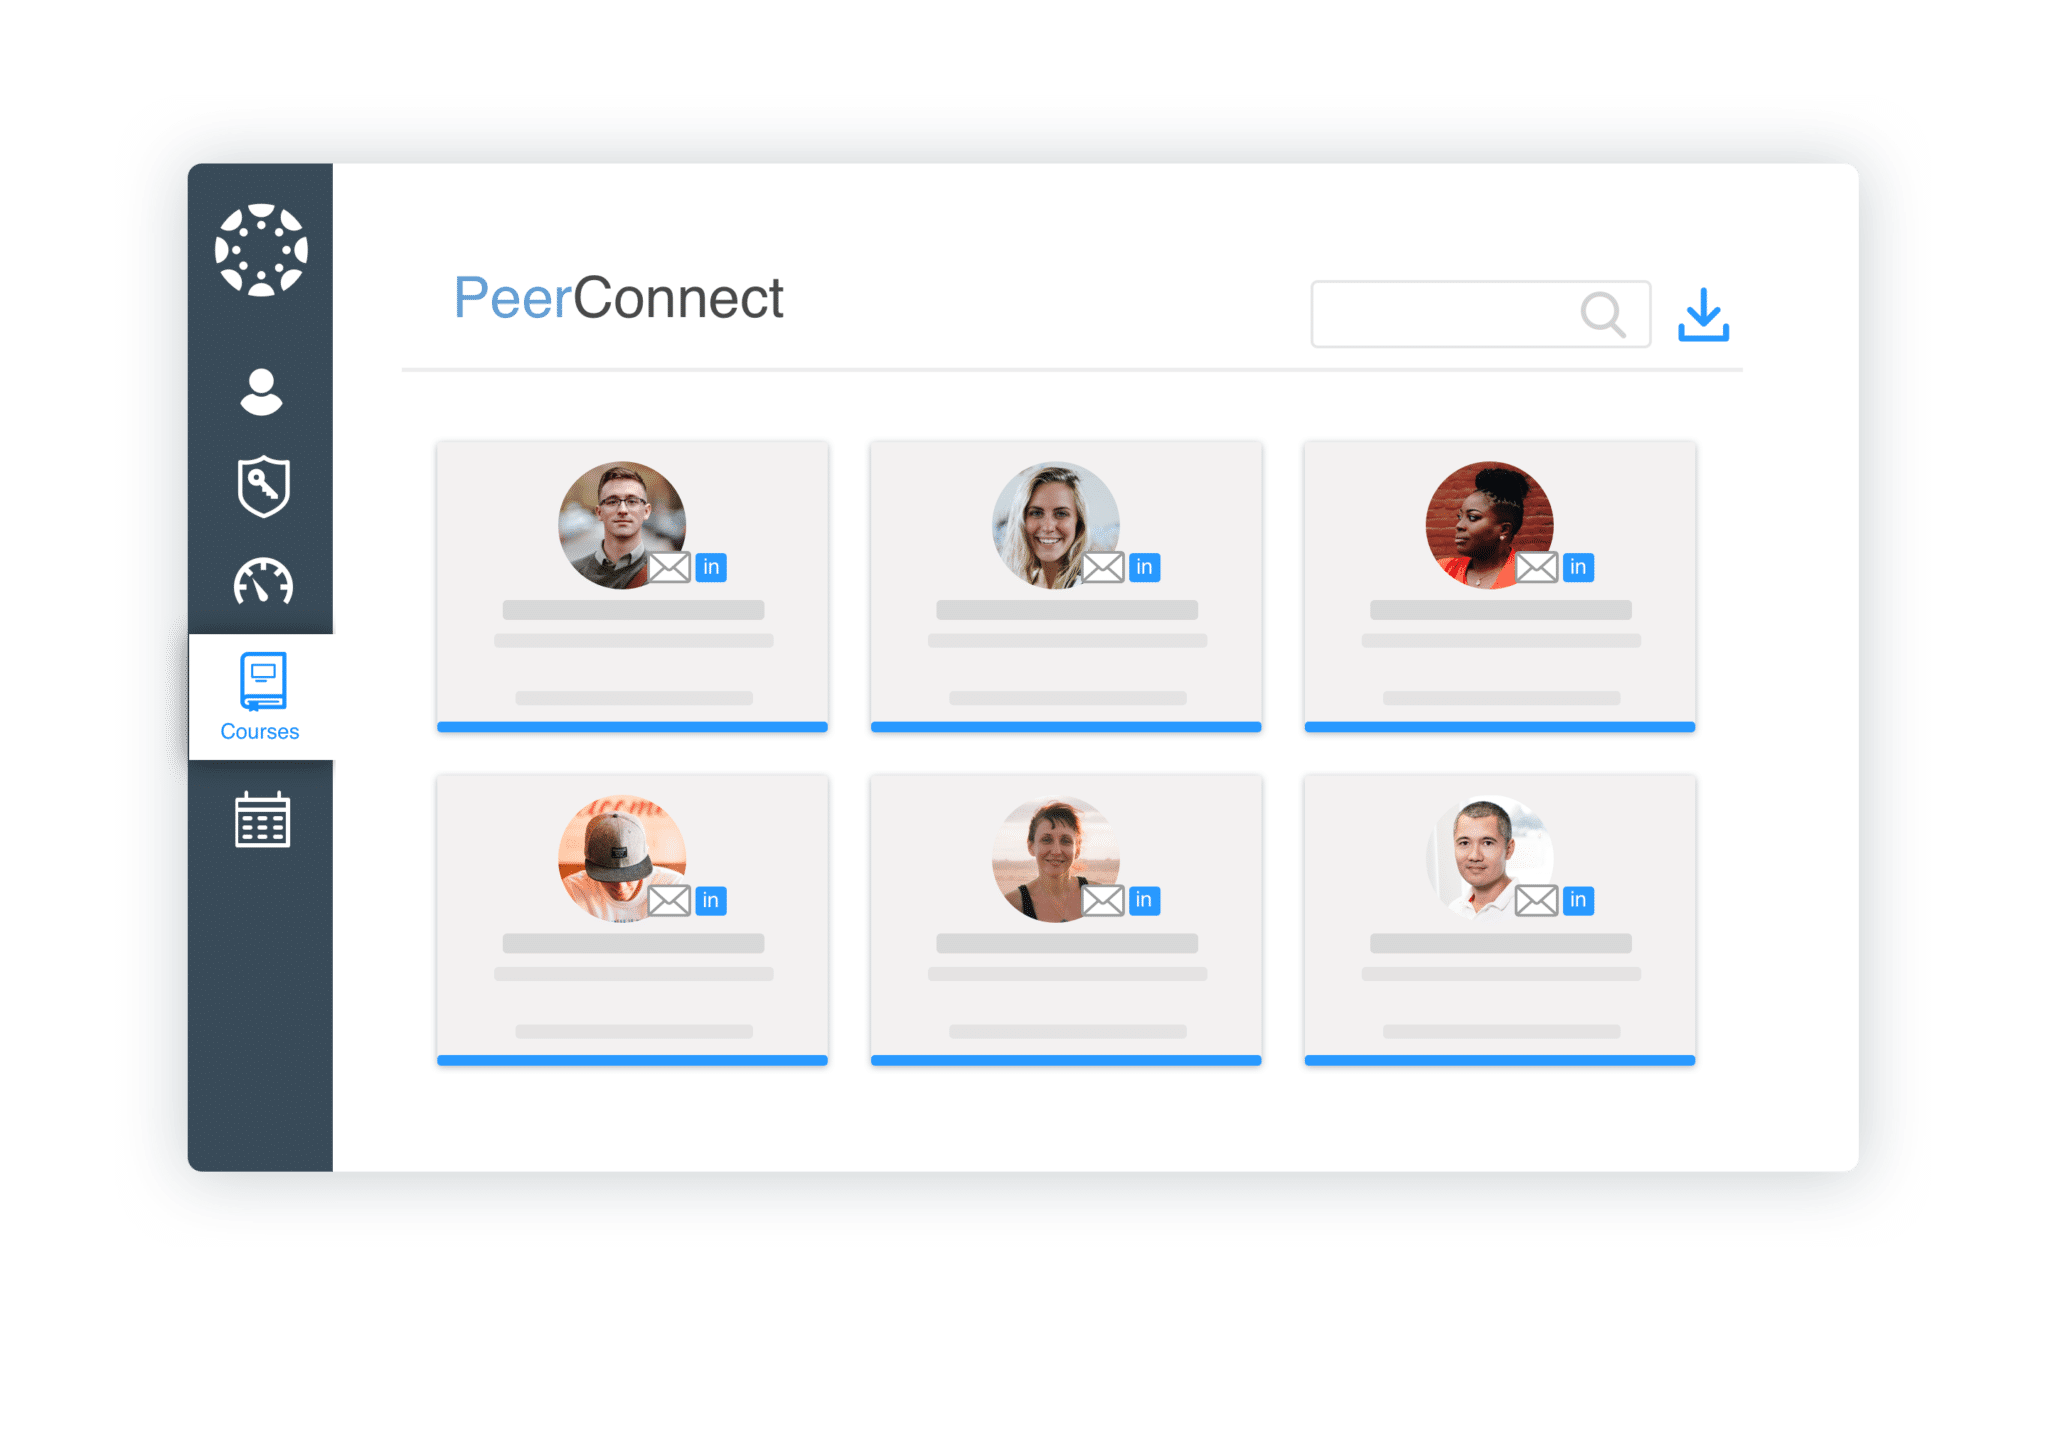 Peer Connect